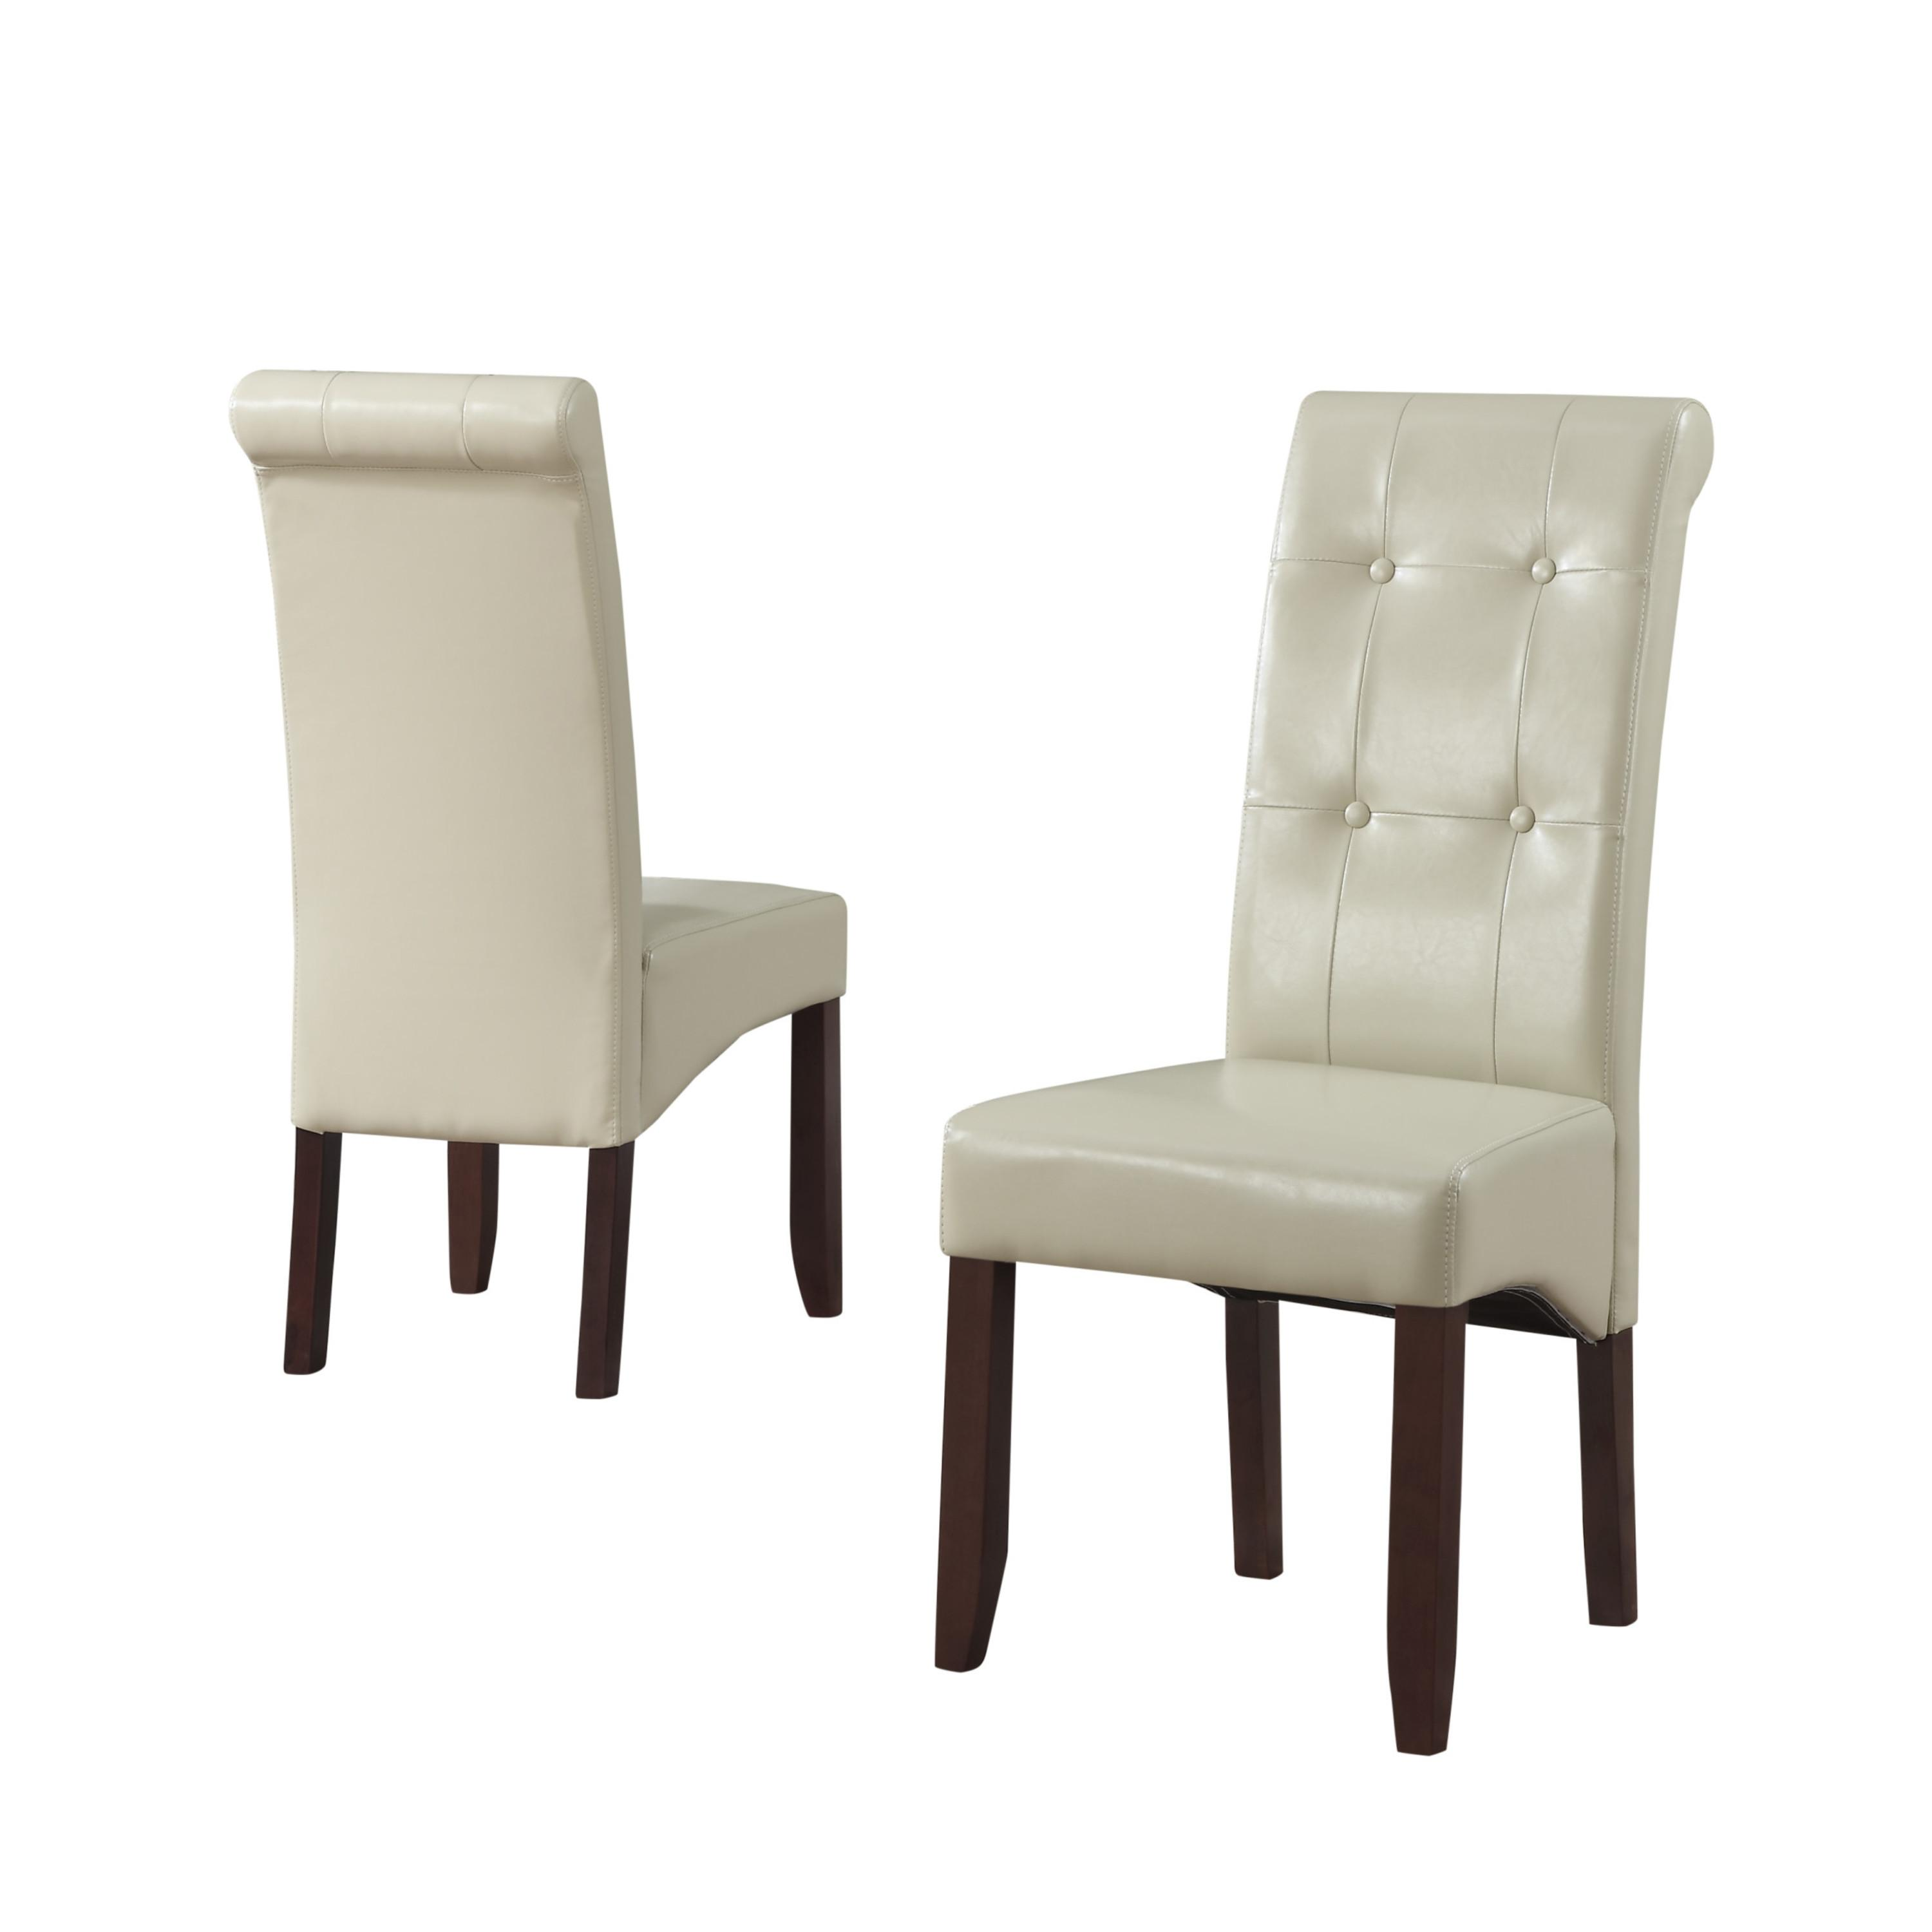 Amazon Dining Chairs: Amazon.com: Simpli Home Cosmopolitan Deluxe Tufted Parson